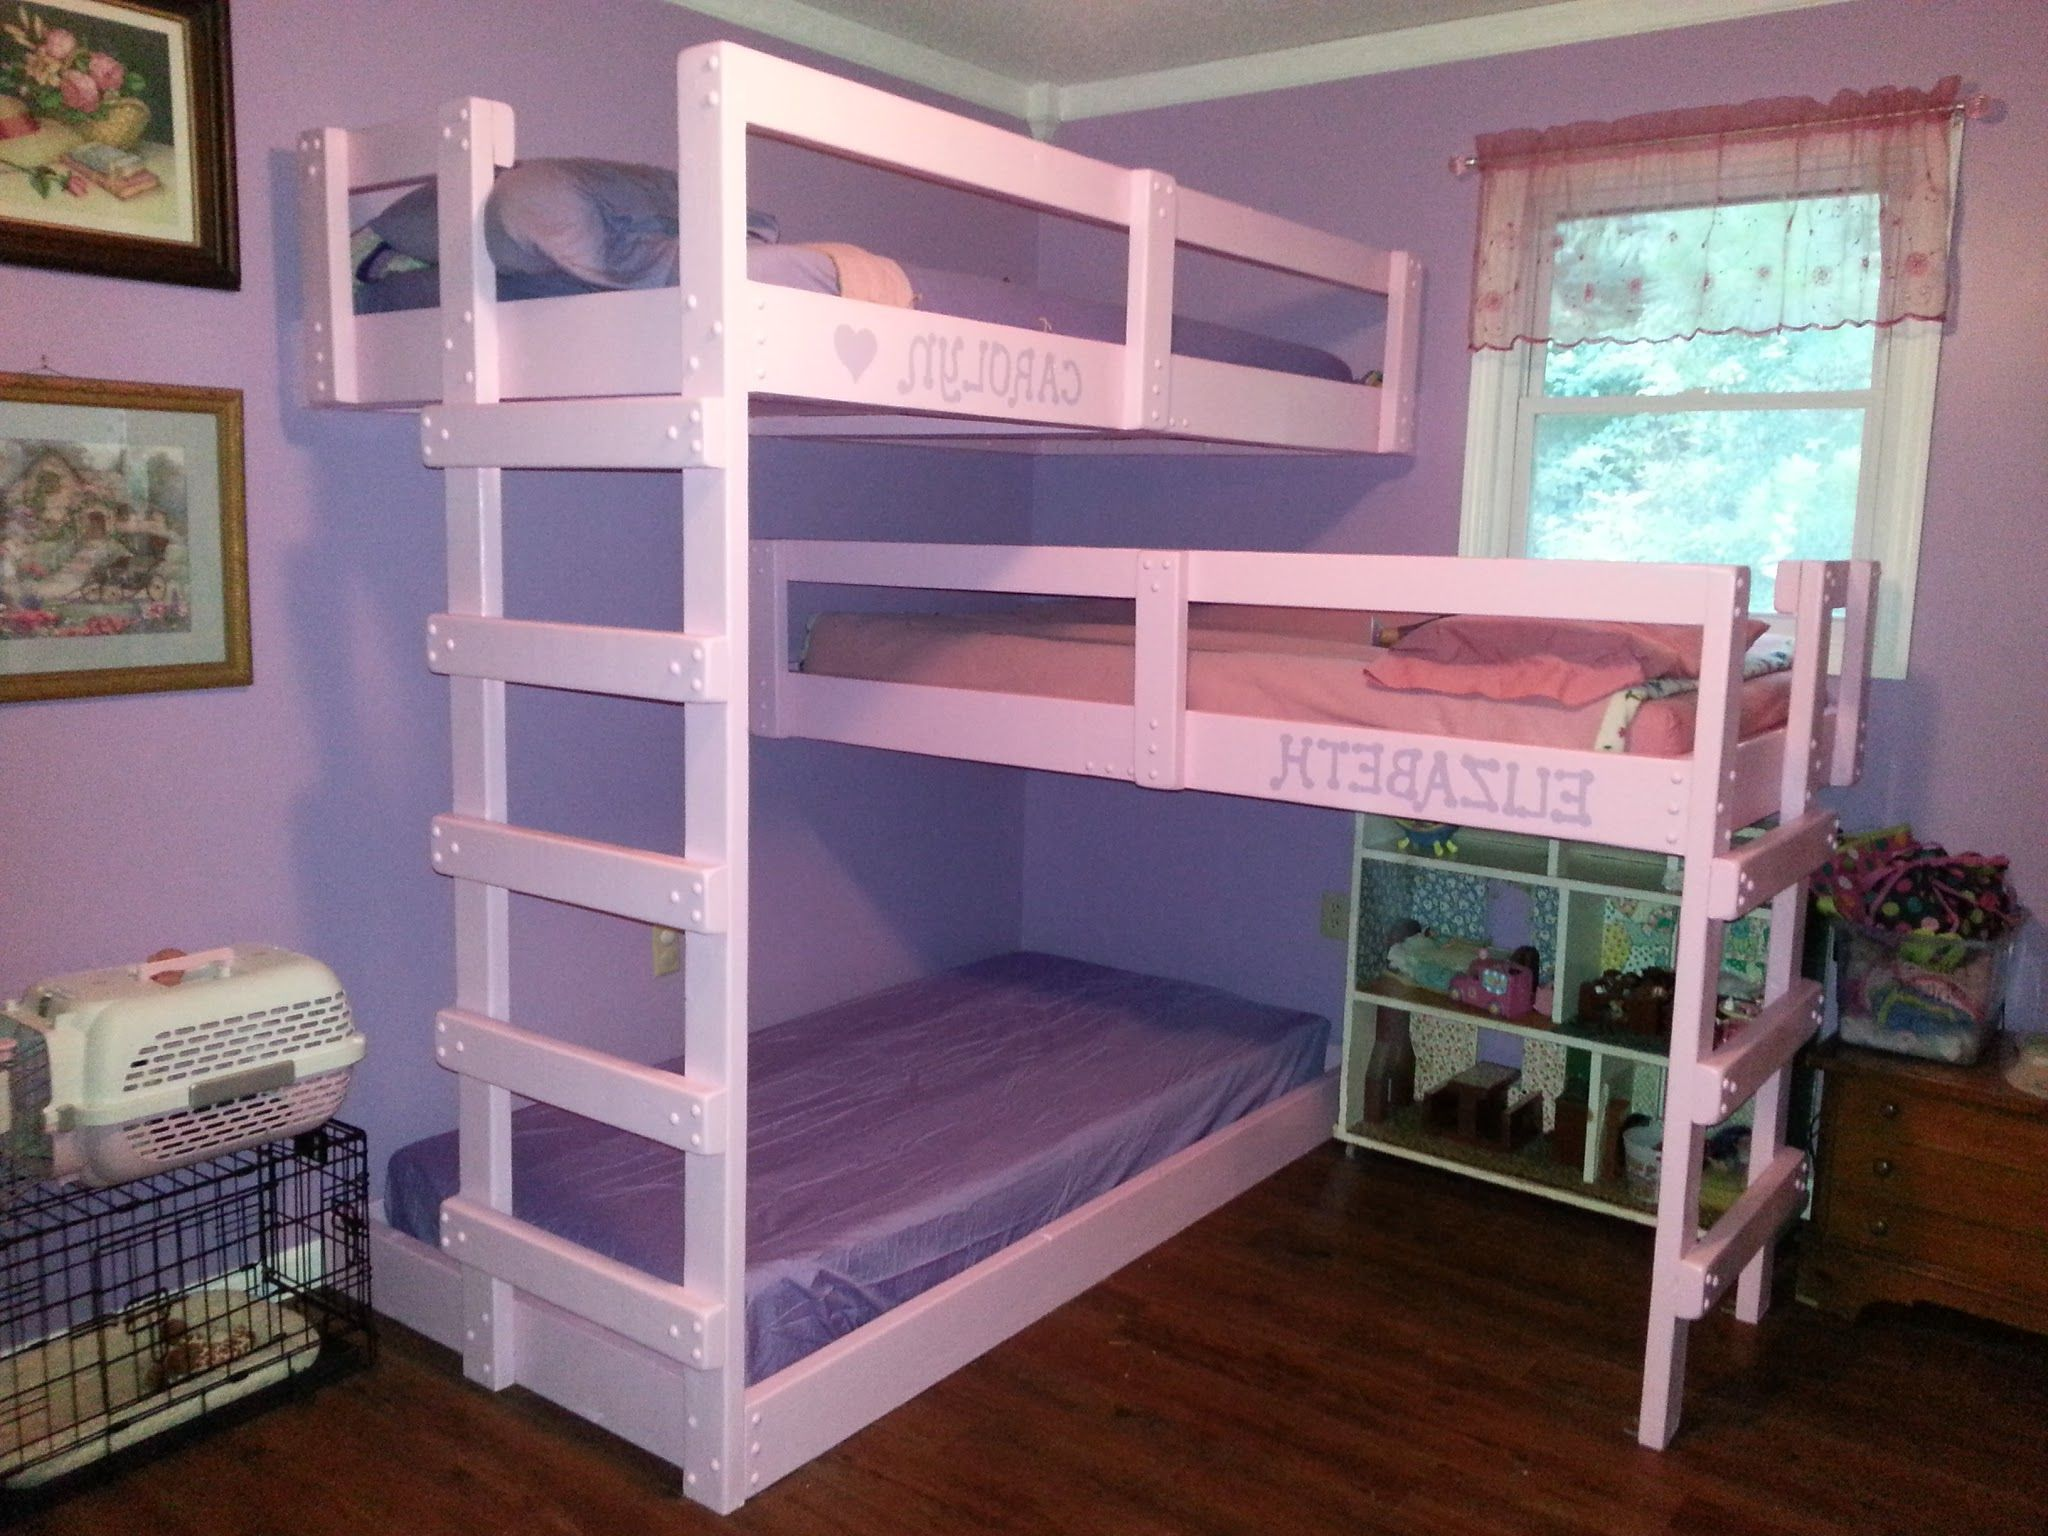 Bunk Bed Bedroom Ideas Bedroom Smart Beds For Small Bedrooms Ideas Triple